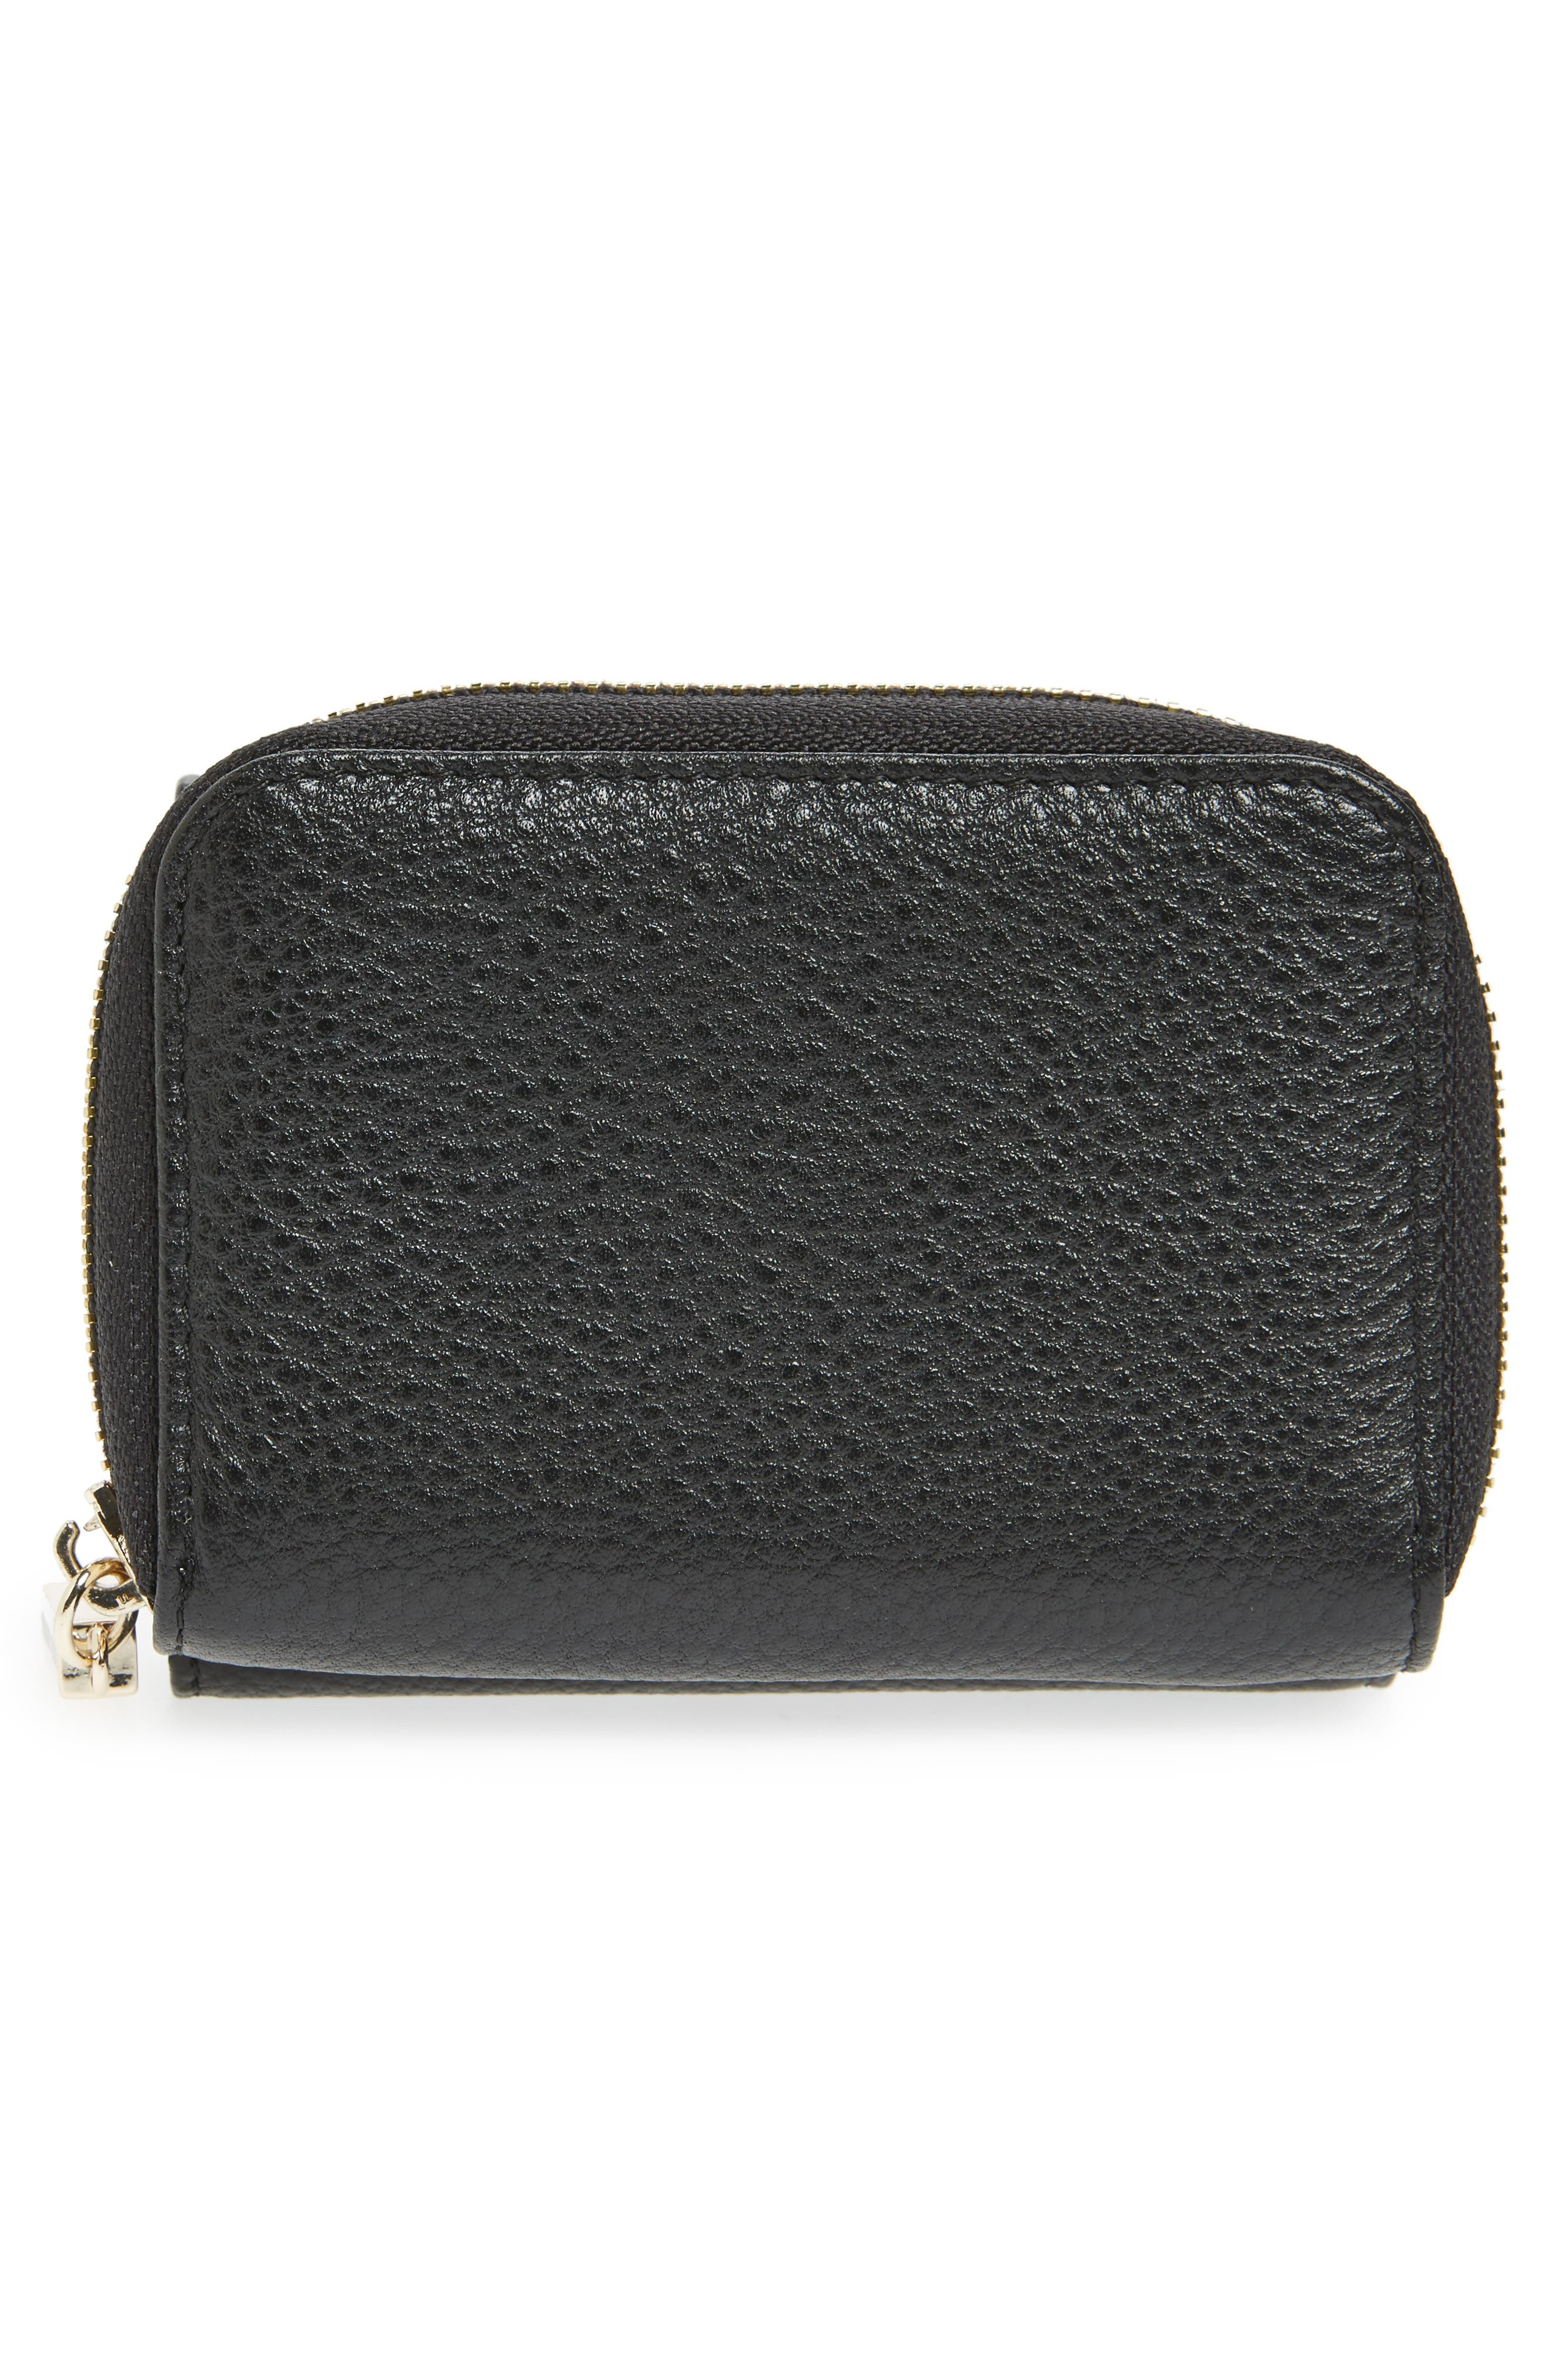 Céline Dion Small Adagio Leather Wallet,                             Alternate thumbnail 3, color,                             Black